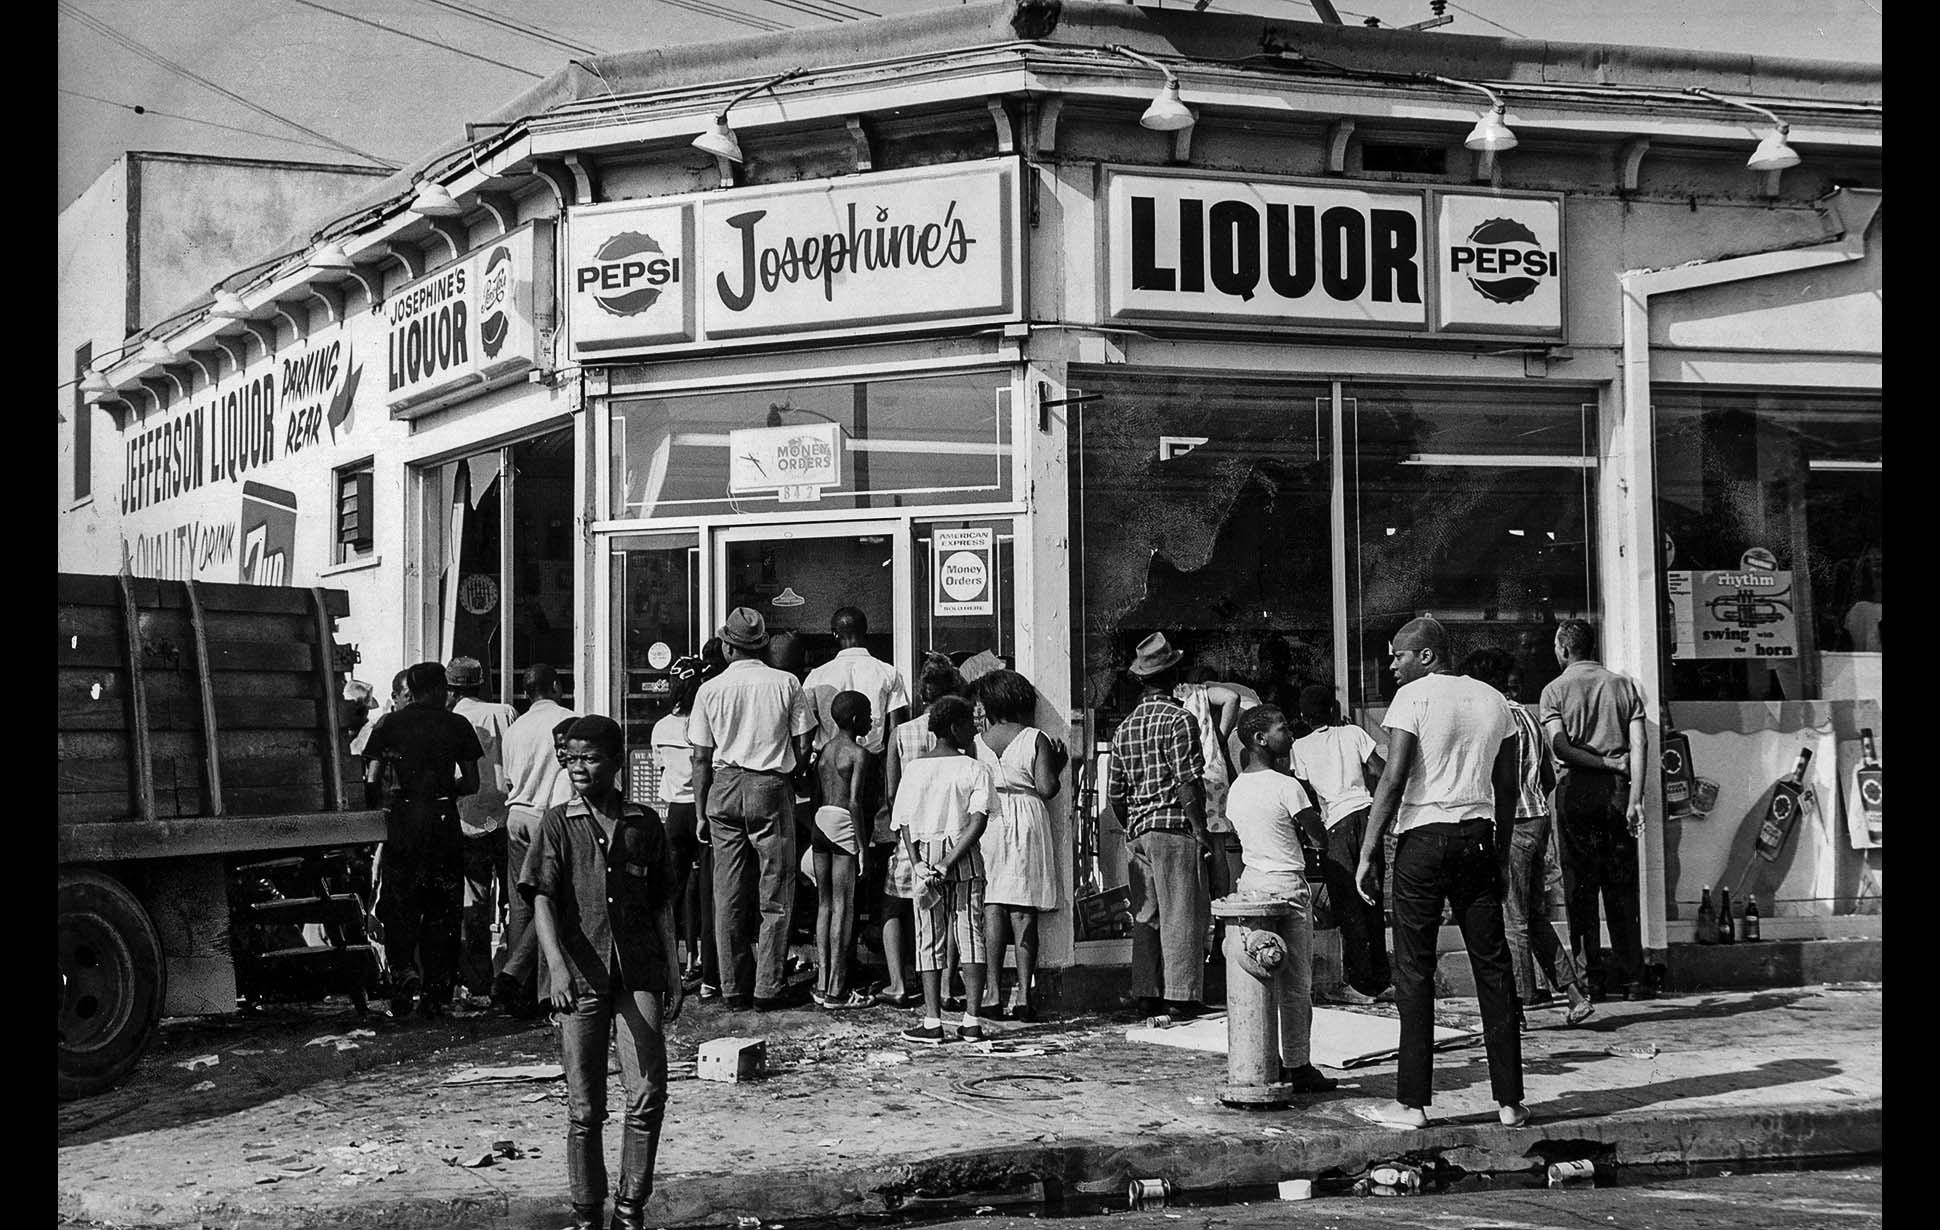 watts riot This week marked the 45th anniversary of the watts riots in los angeles watts, a mostly black working-class neighborhood since the 1940s, became a hotbed of racial tension and injustice throughout the early 1960s.